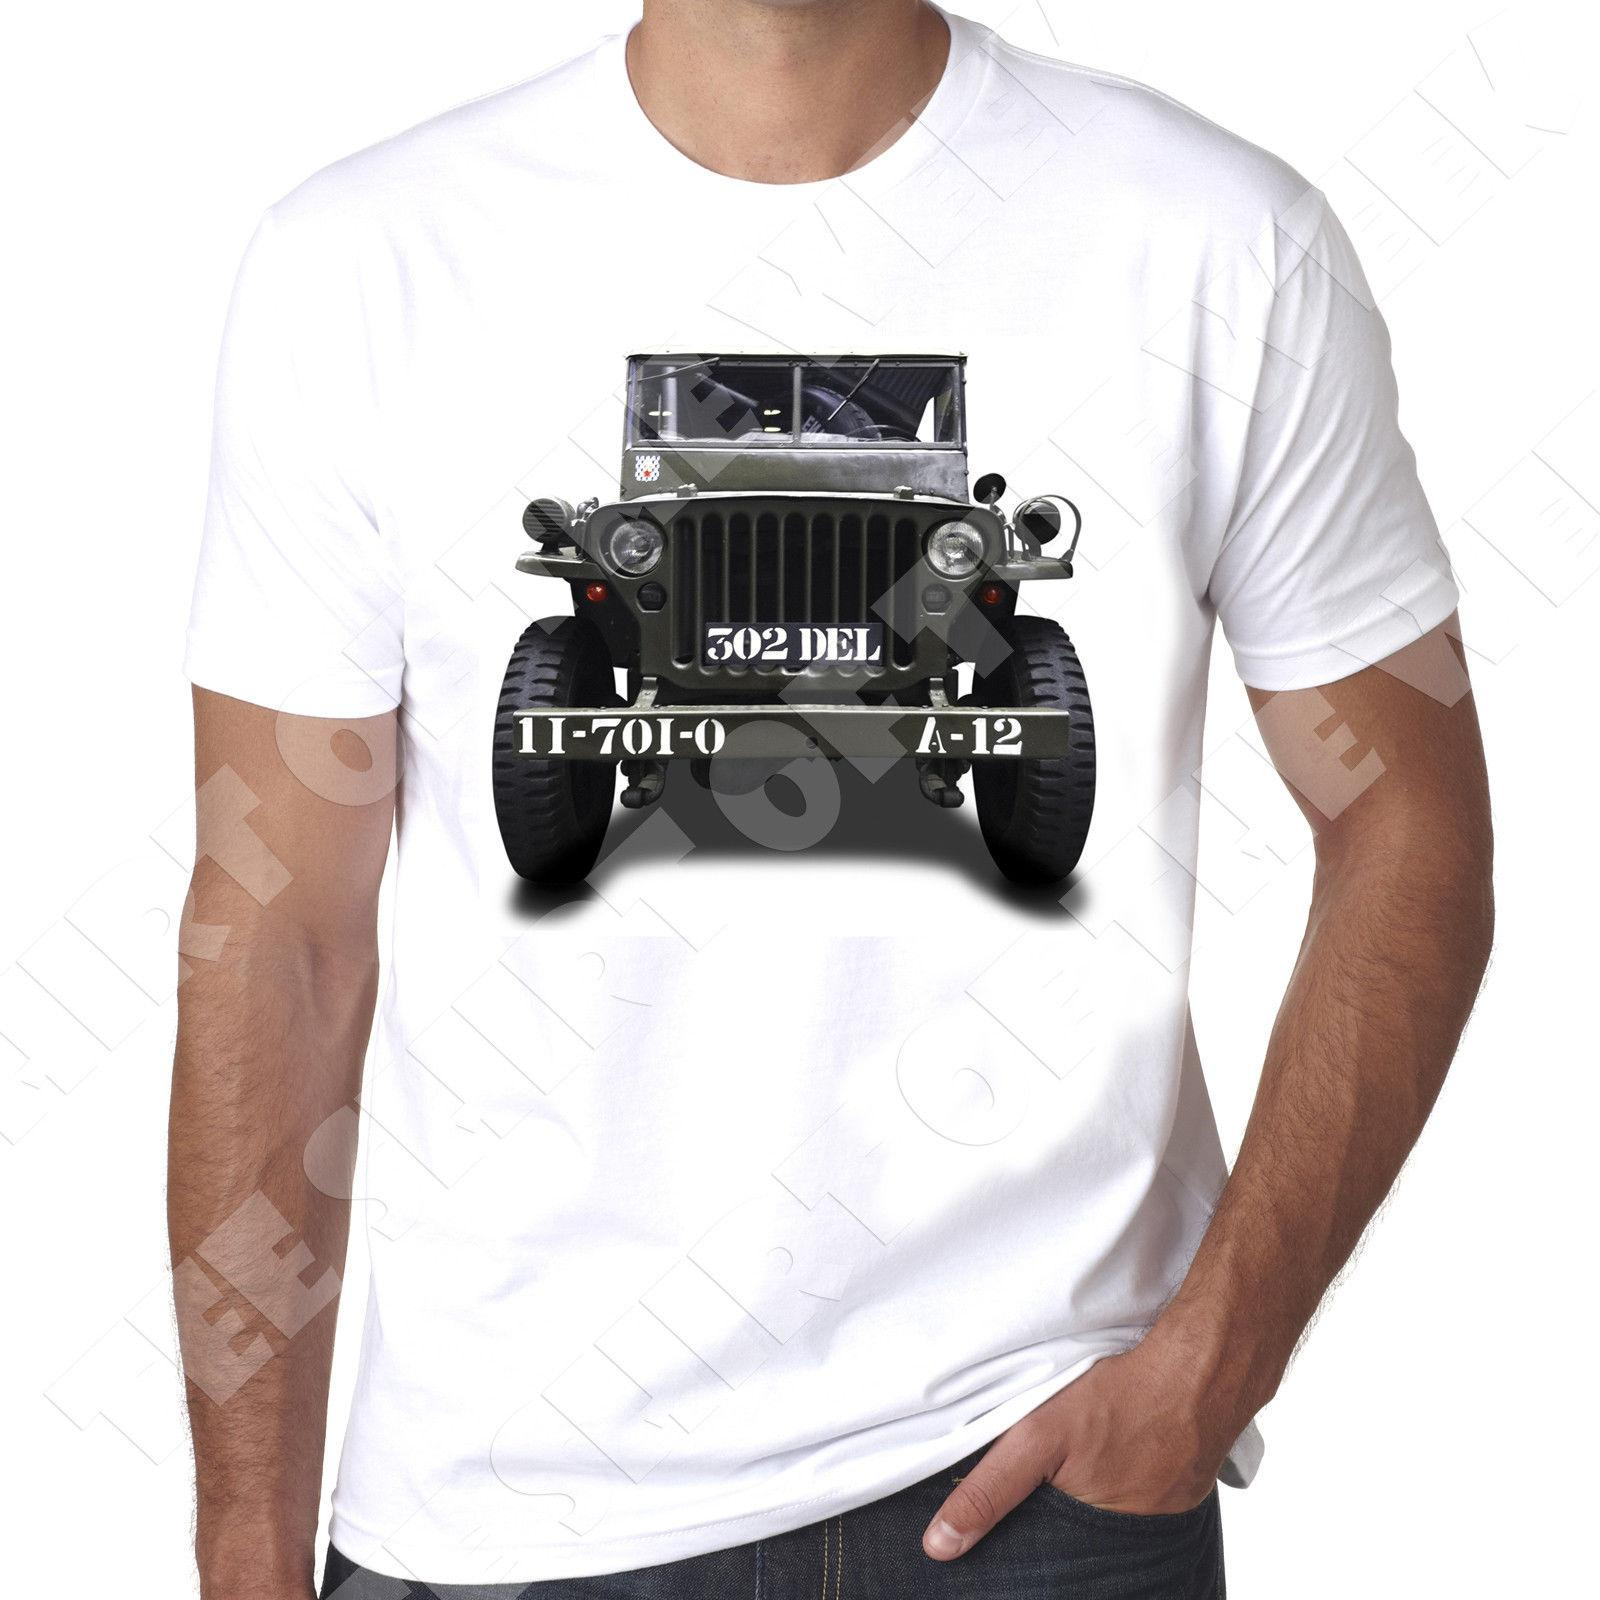 Gp Acquista Divertente Ww2 4x4 In T Willys 100 Uomo Cotone Shirt EpE8nwvr